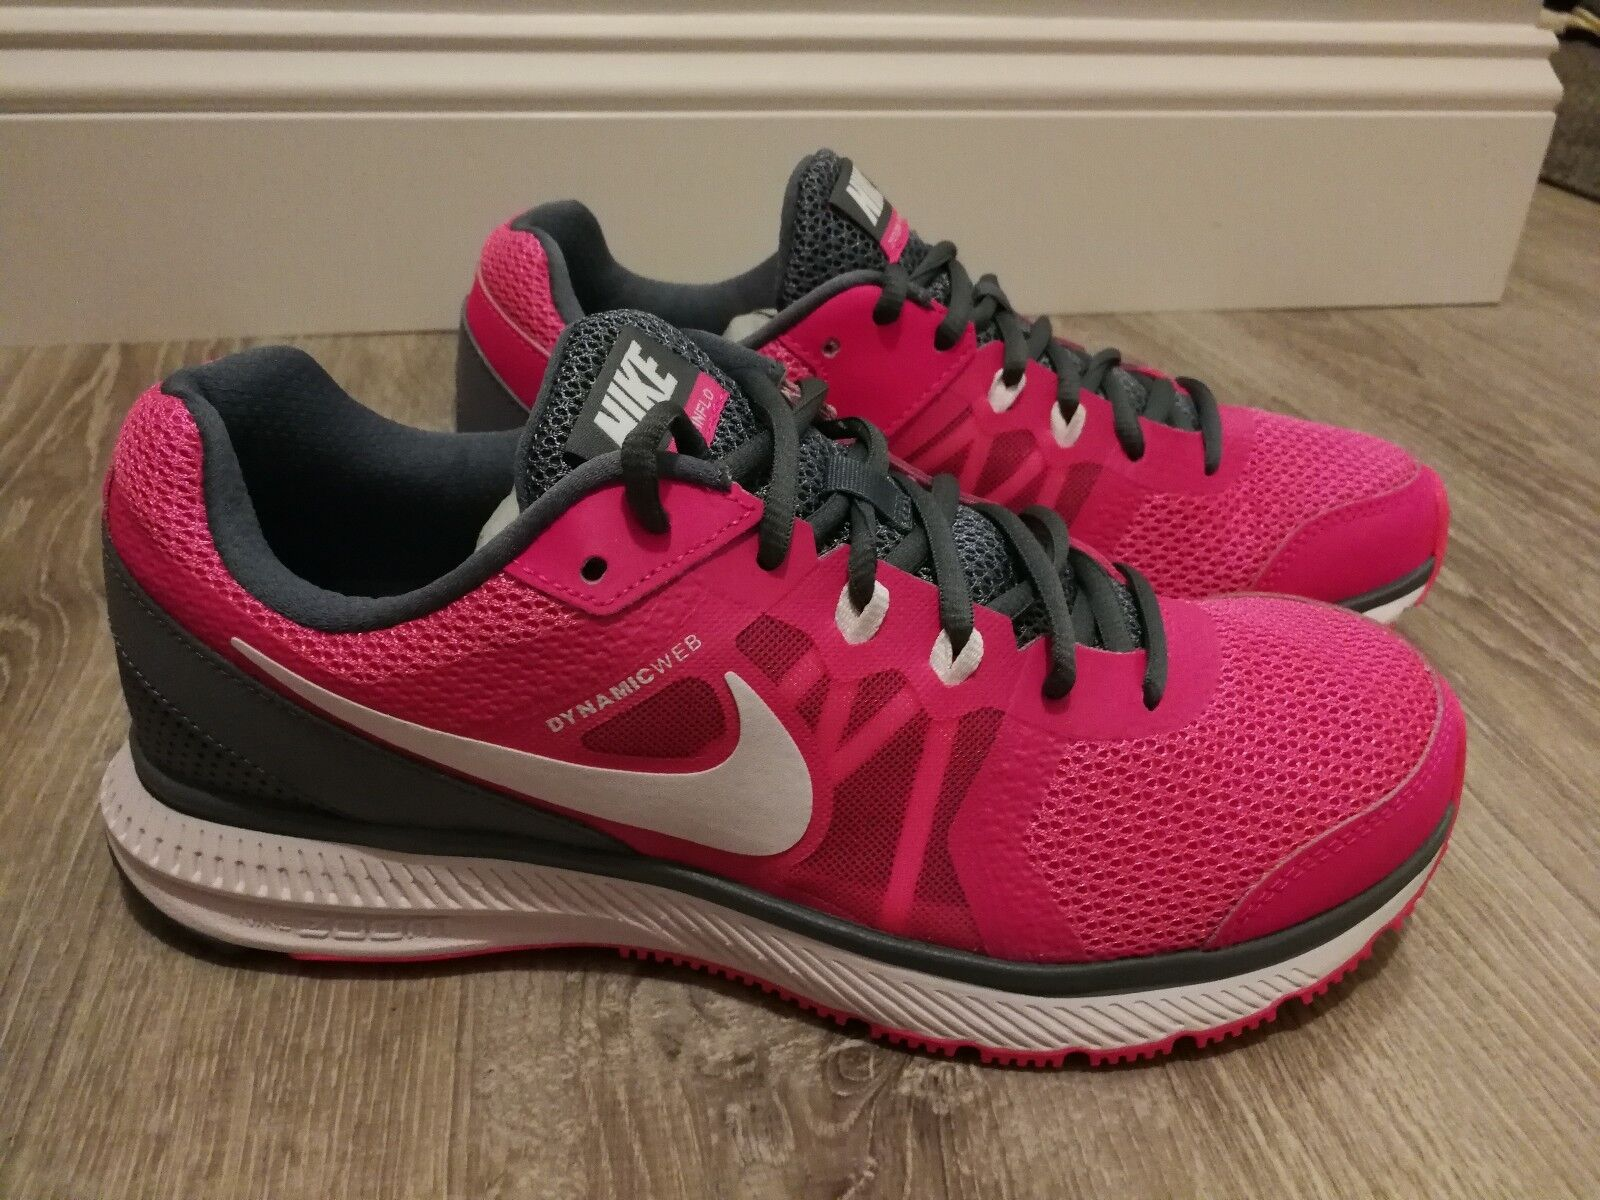 New in Box Nike ZOOM WINFLO Women's Sizes 10 Athletic shoes Pink & Gry 684490601